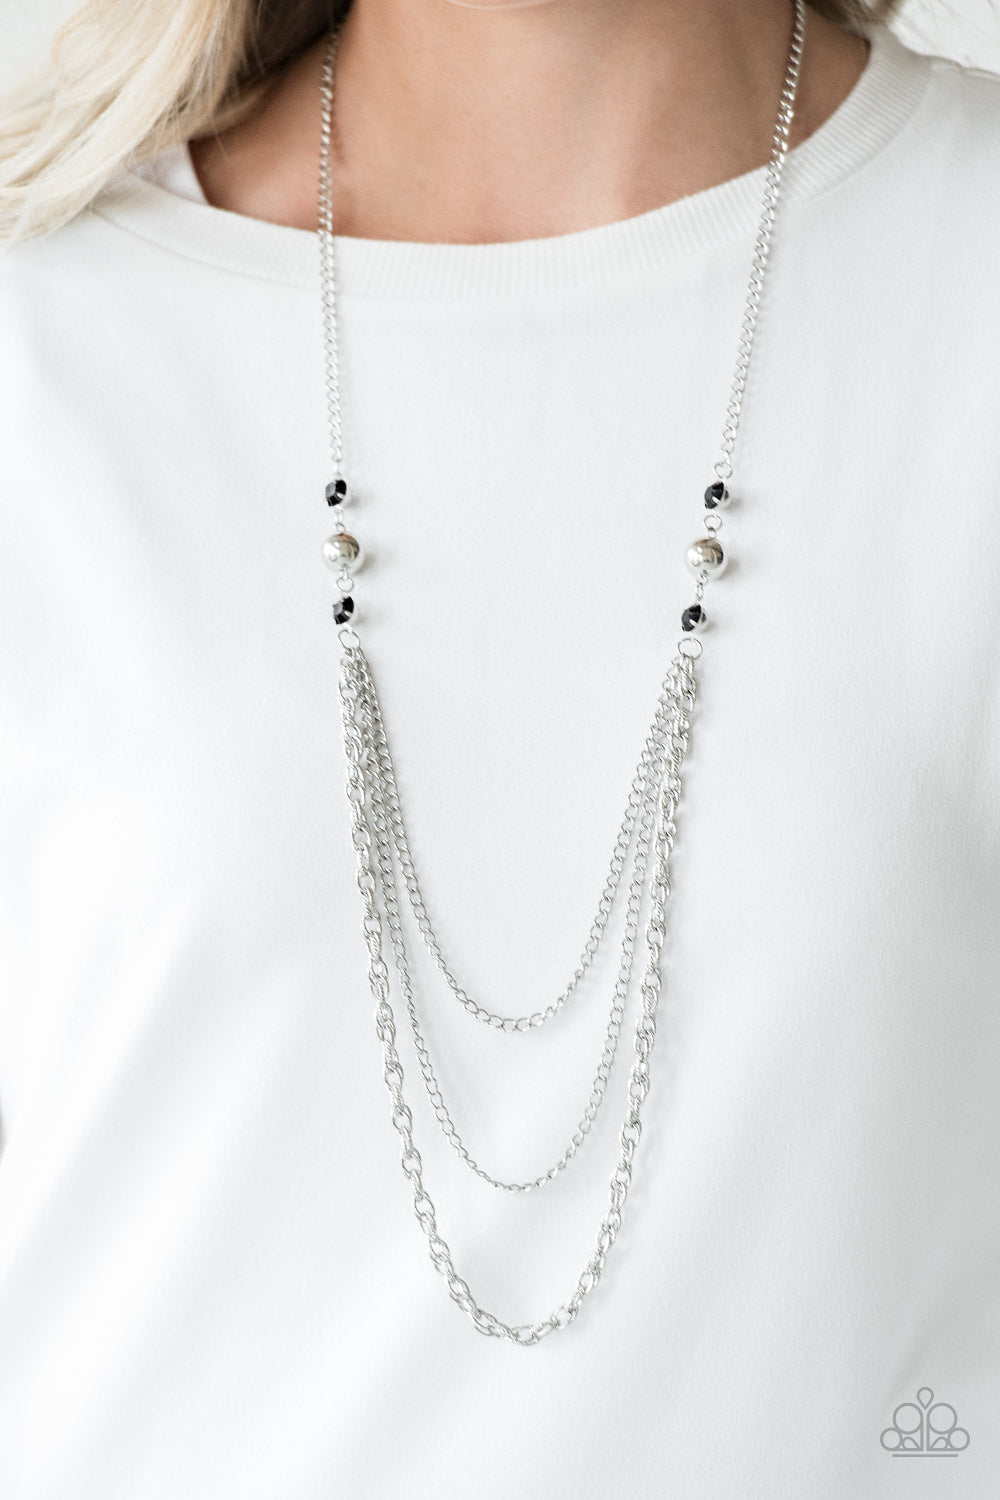 Ritz It All - black - Paparazzi necklace